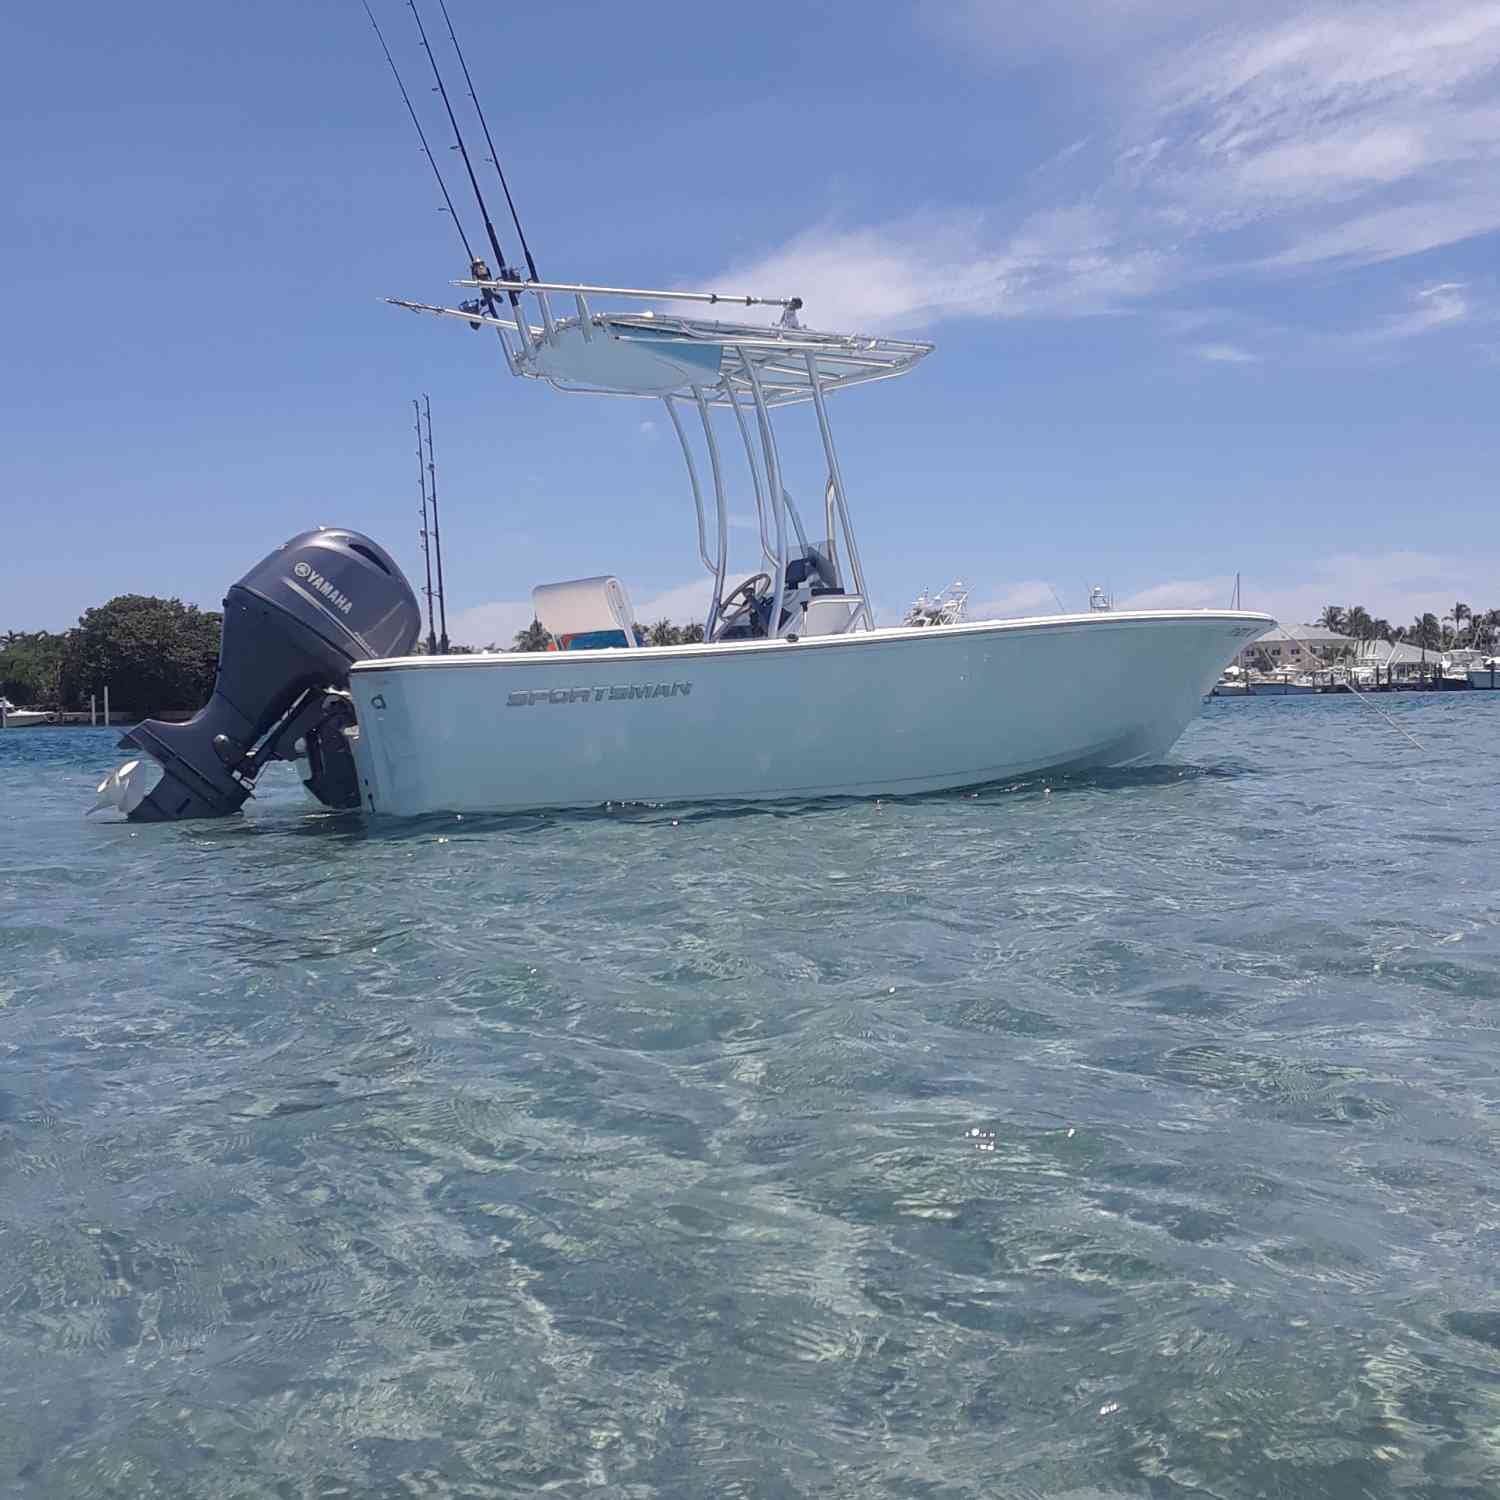 Title: Peanut island sand bar - On board their Sportsman Island Reef 19 Center Console - Location: Riviera beach. Participating in the Photo Contest #SportsmanSeptember2018